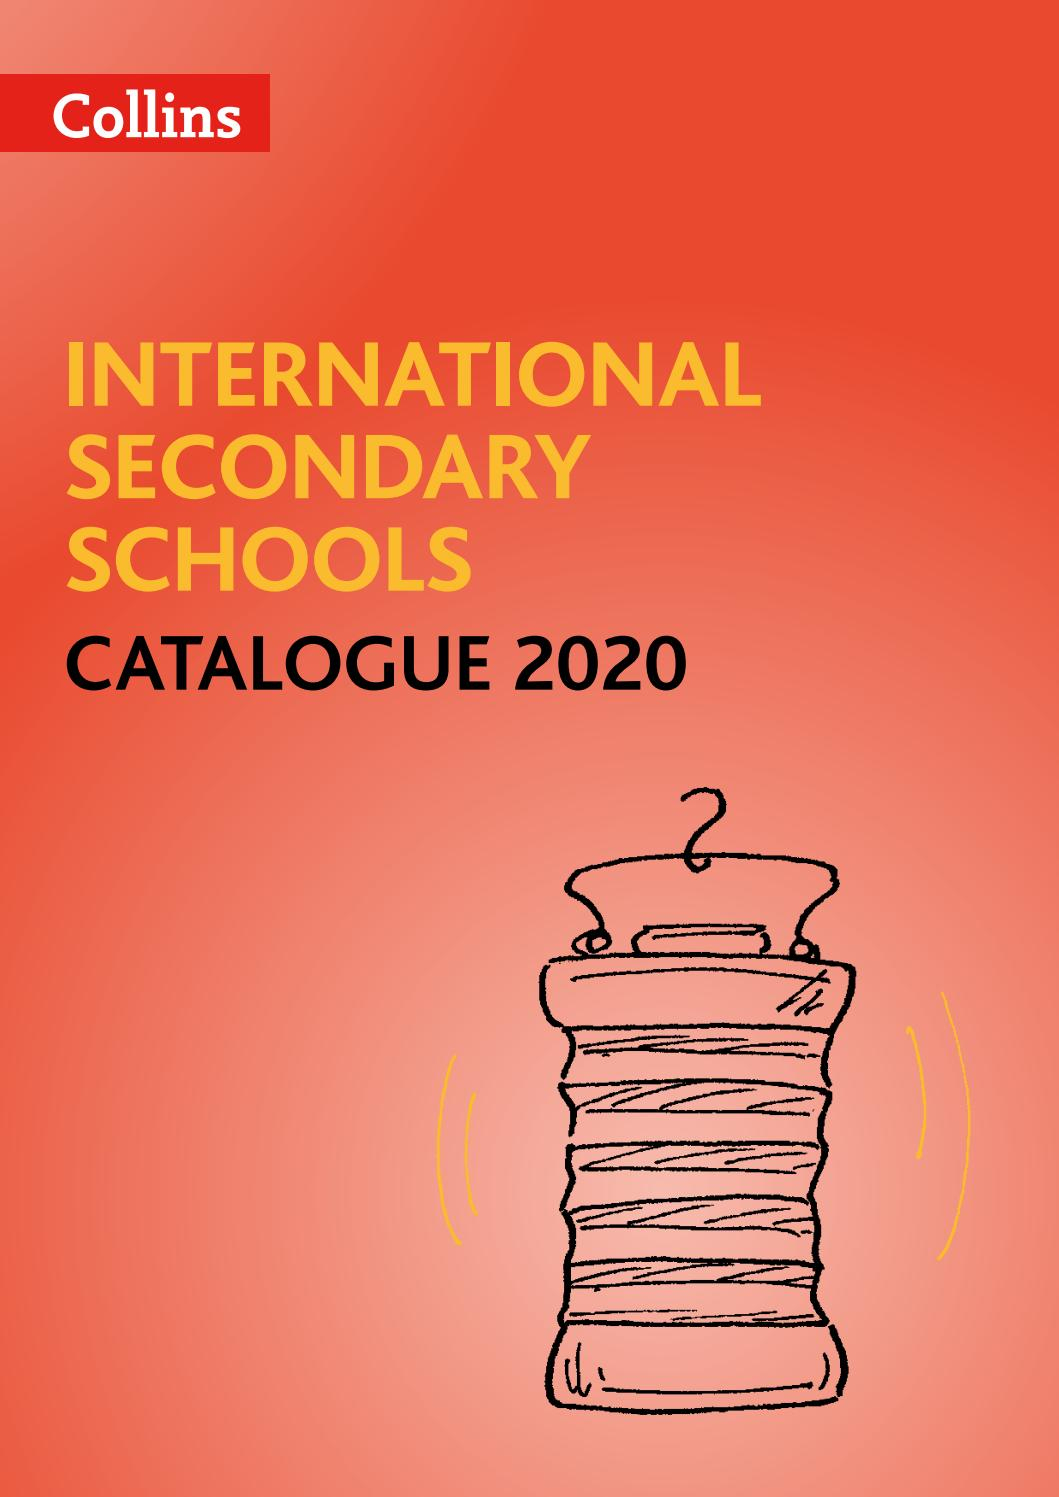 International Secondary Catalogue 2020 By Collins - Issuu dedans Revision Grande Section